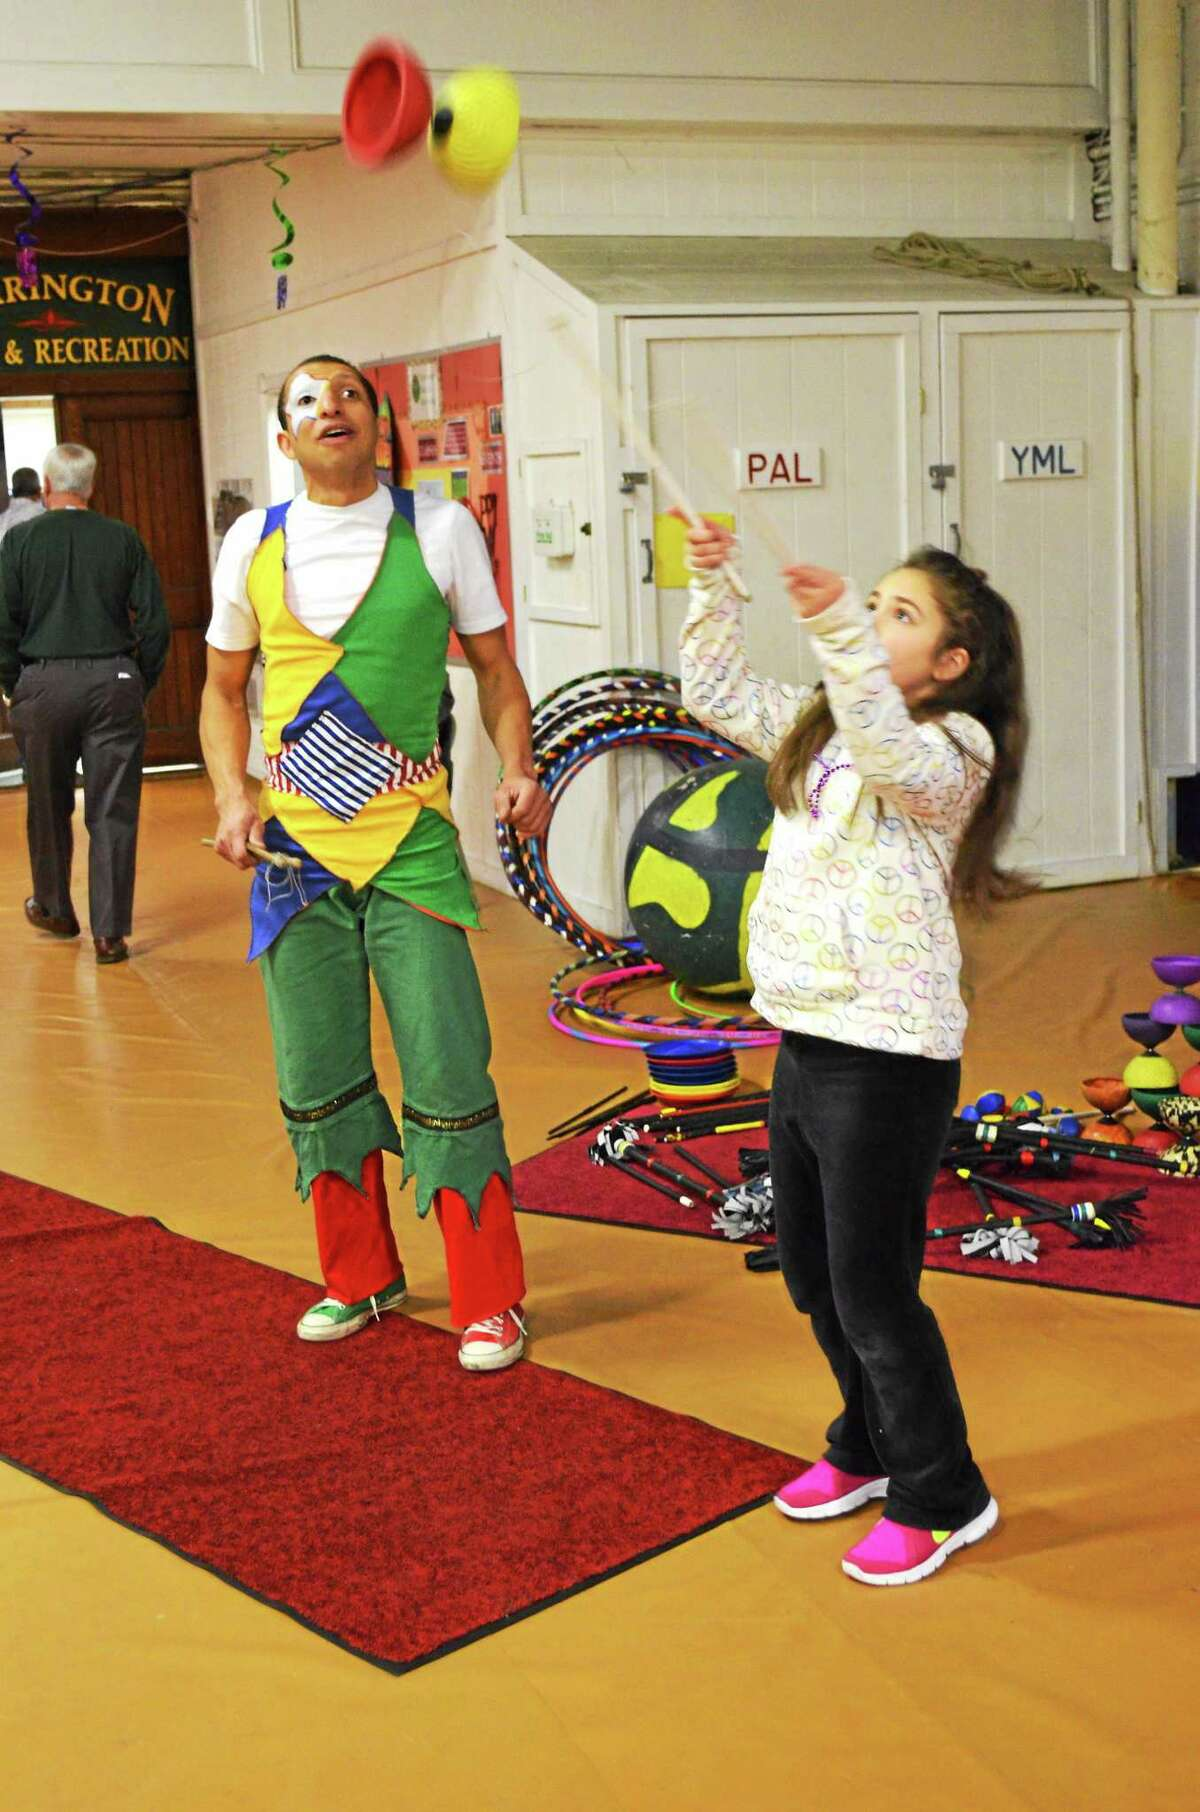 File photo - The Register Citizen Isabella Caruso, 8, of Torrington gets some lessons from Joel Melendez at the Torrington Armory for the city's Last Night celebration for New Year's Eve in 2014.